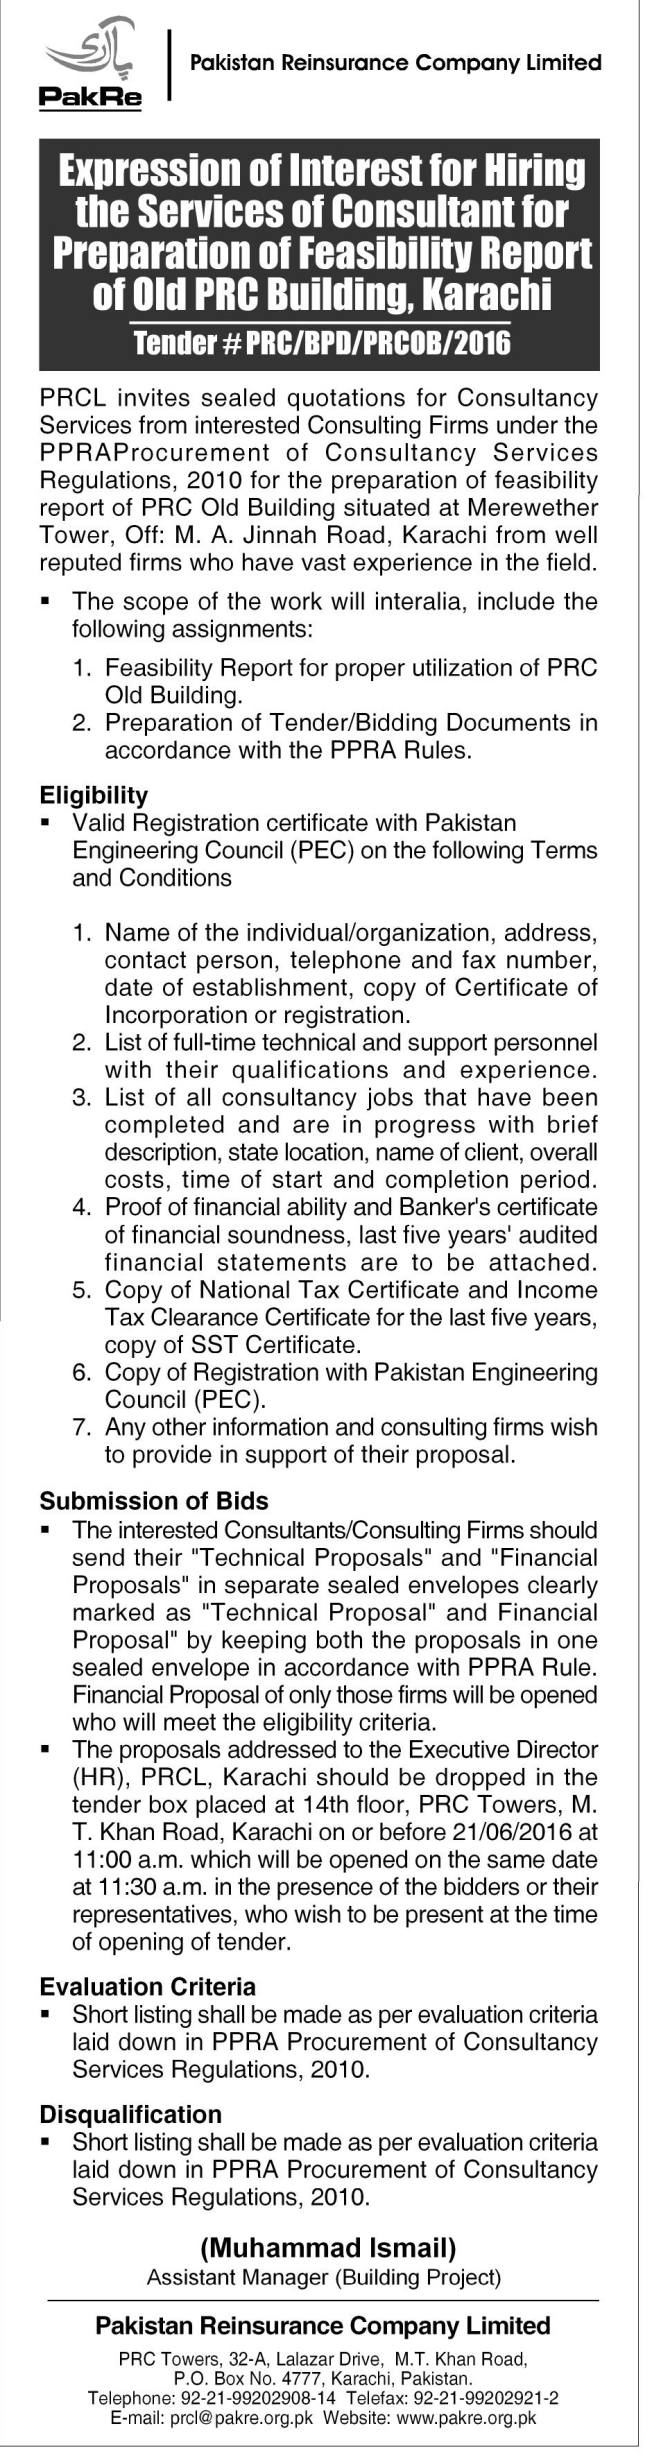 Pakistan Reinsurance Company Limited - Expression of